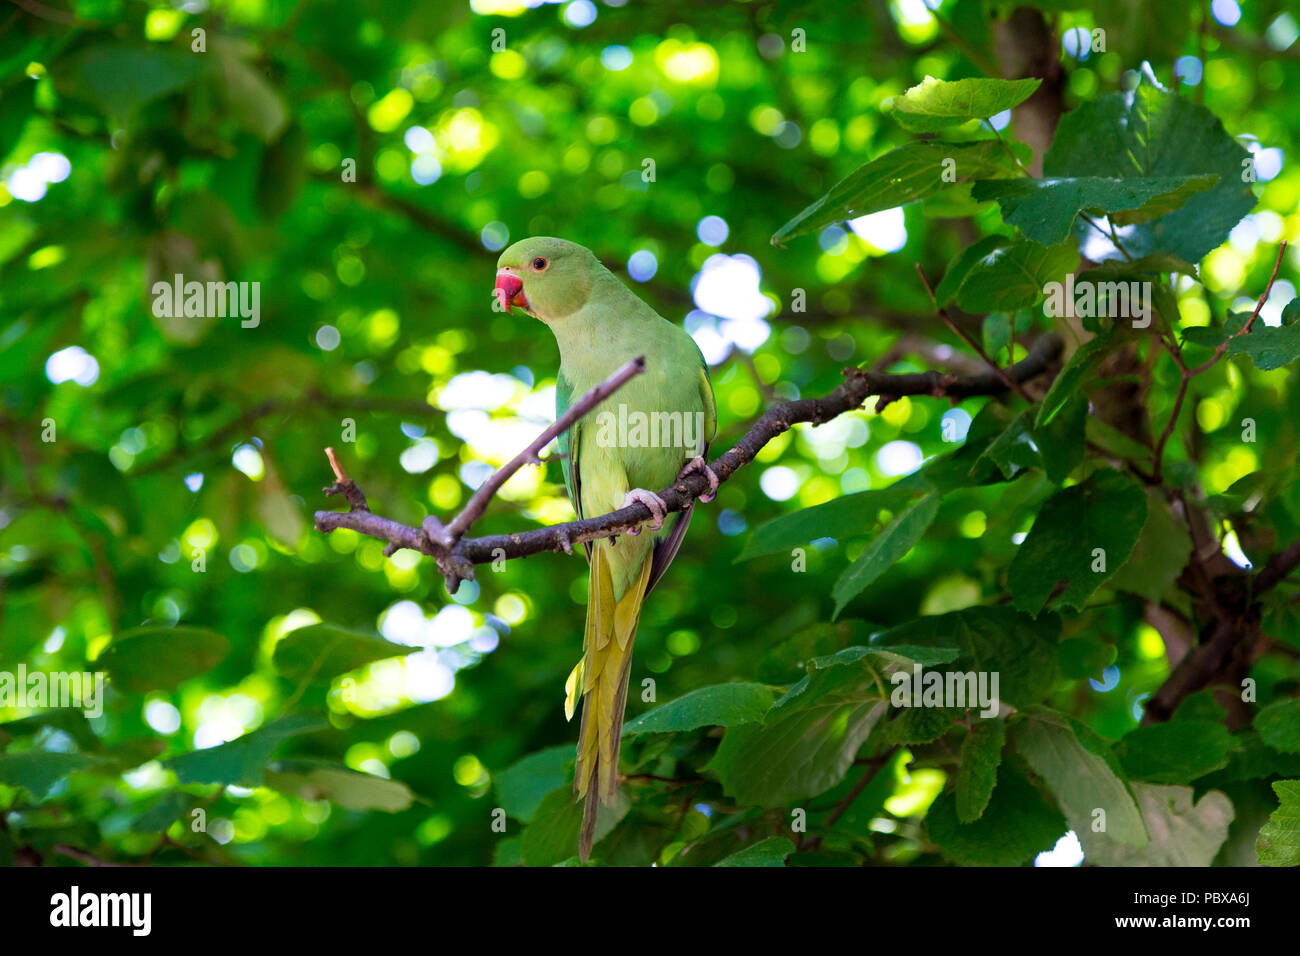 Green parakeet sitting on a branch in a tree, Hyde Park, London, UK - Stock Image